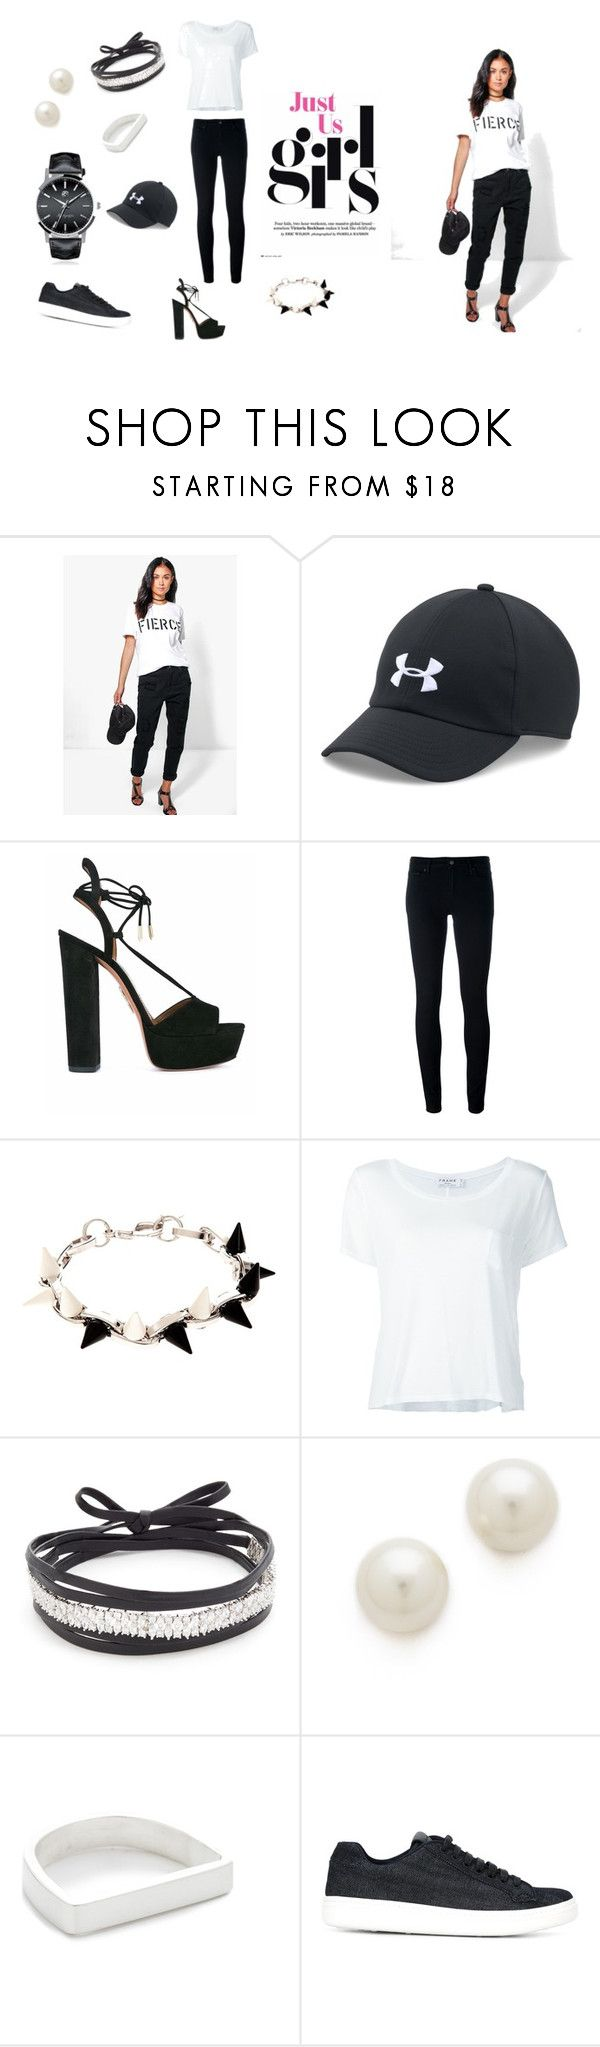 """Just For Girls..**"" by yagna ❤ liked on Polyvore featuring Boohoo, Under Armour, Aquazzura, Levi's, Joomi Lim, Frame, Amber Sceats, Kenneth Jay Lane, Maya Magal and Church's"